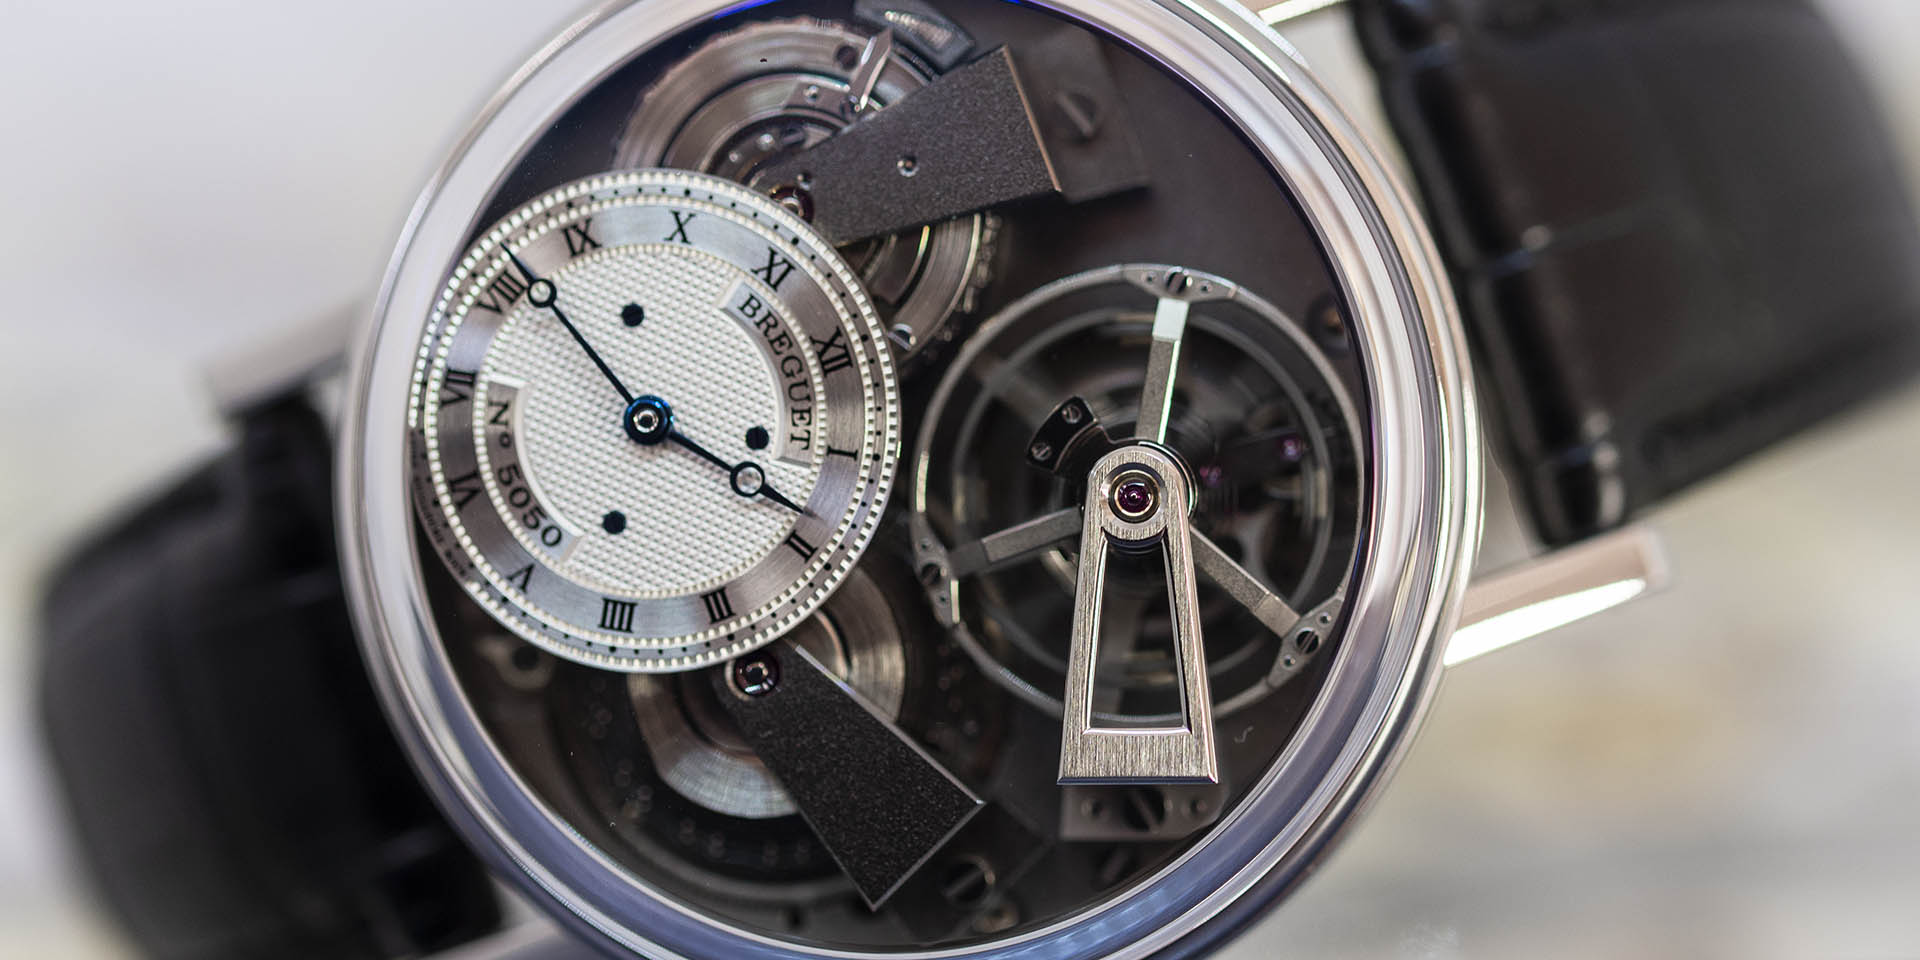 7047pt-11-9zu-breguet-tradition-fusee-tourbillon-1.jpg